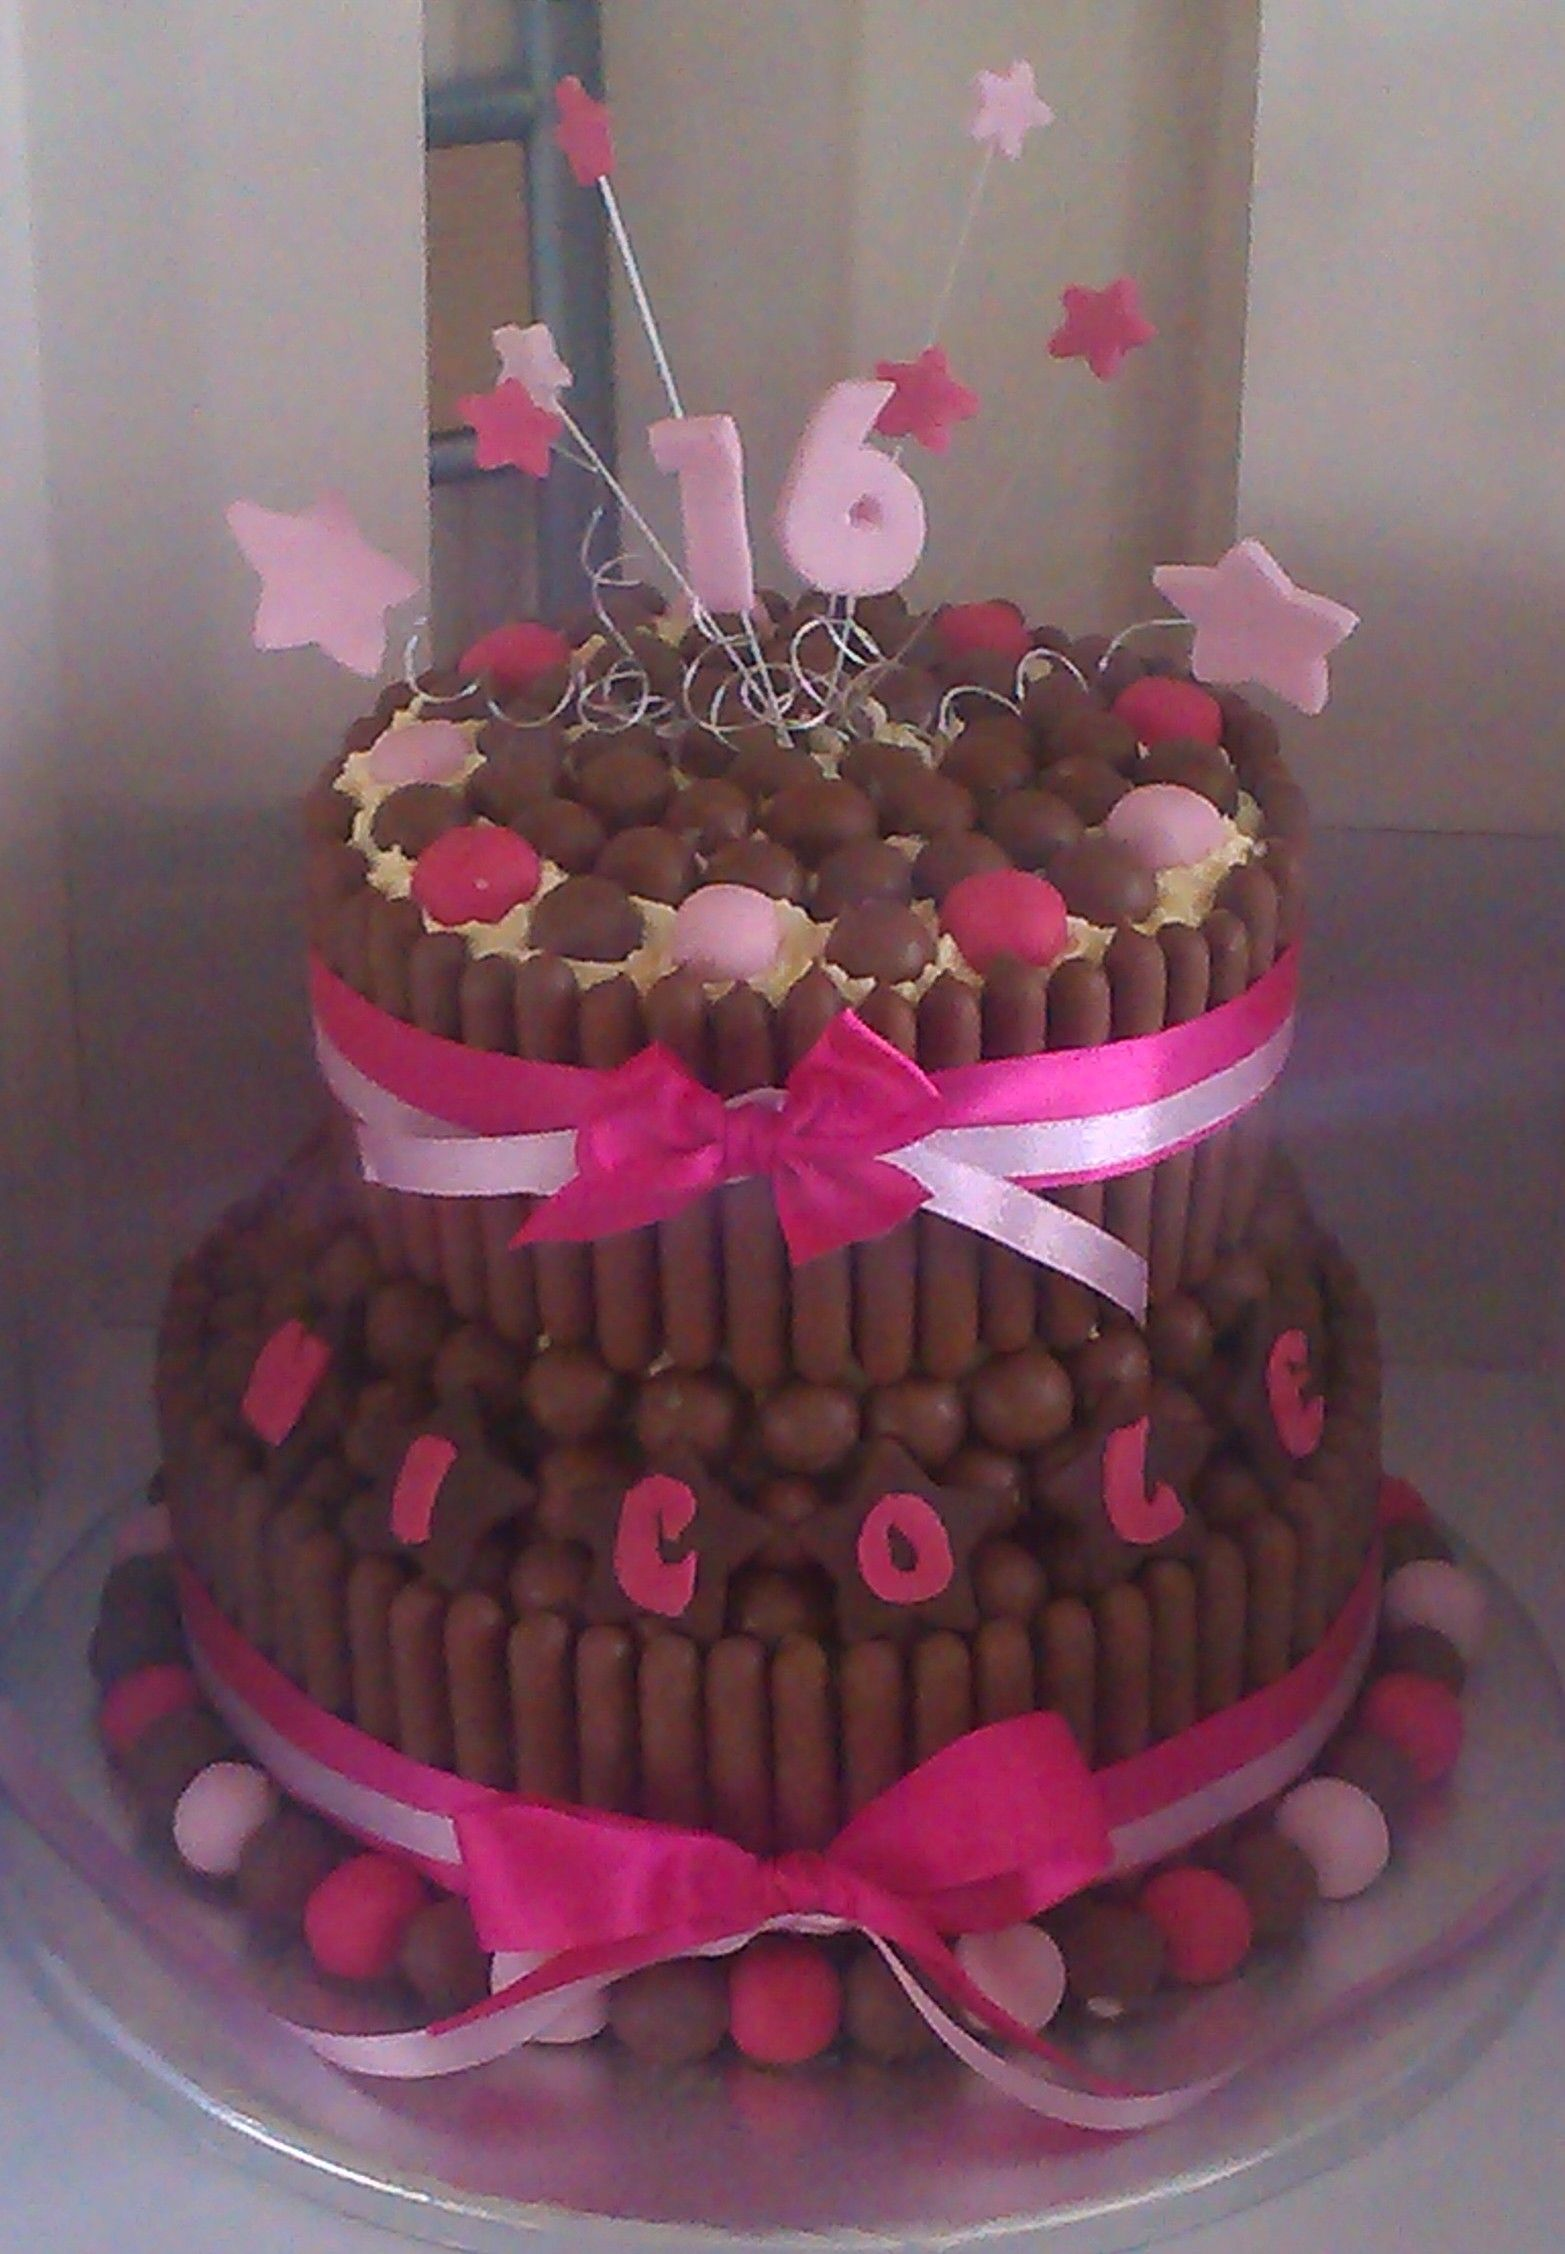 Double Tier 16th Birthday Cake For Nicole Choc Chip Sponge Filled